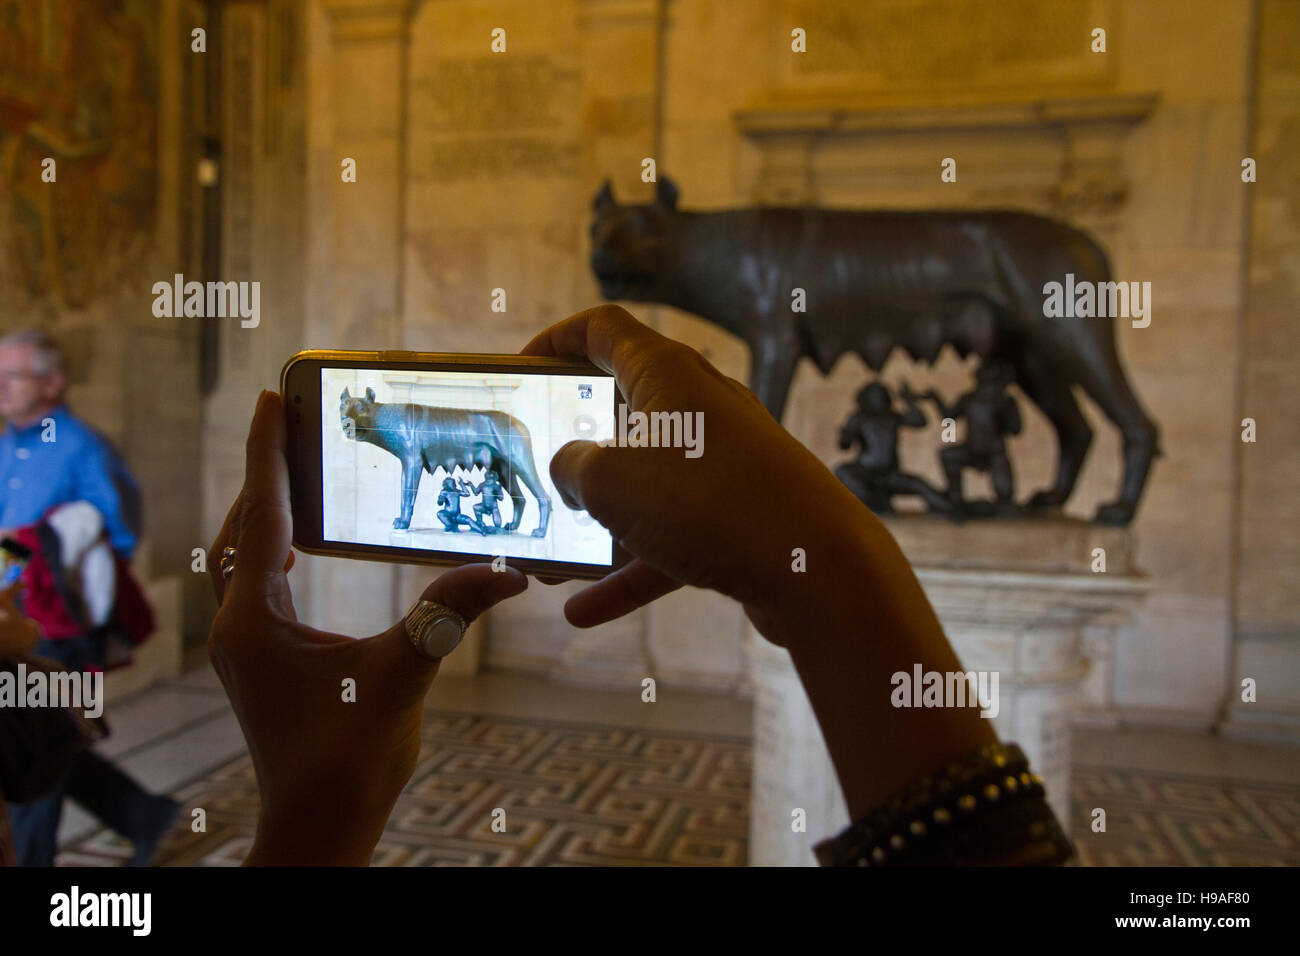 Capitoline Wolf statue, tourist shotting photos mobile Rome, italy, capitoline museums, musei capitolini, art touristic - Stock Image